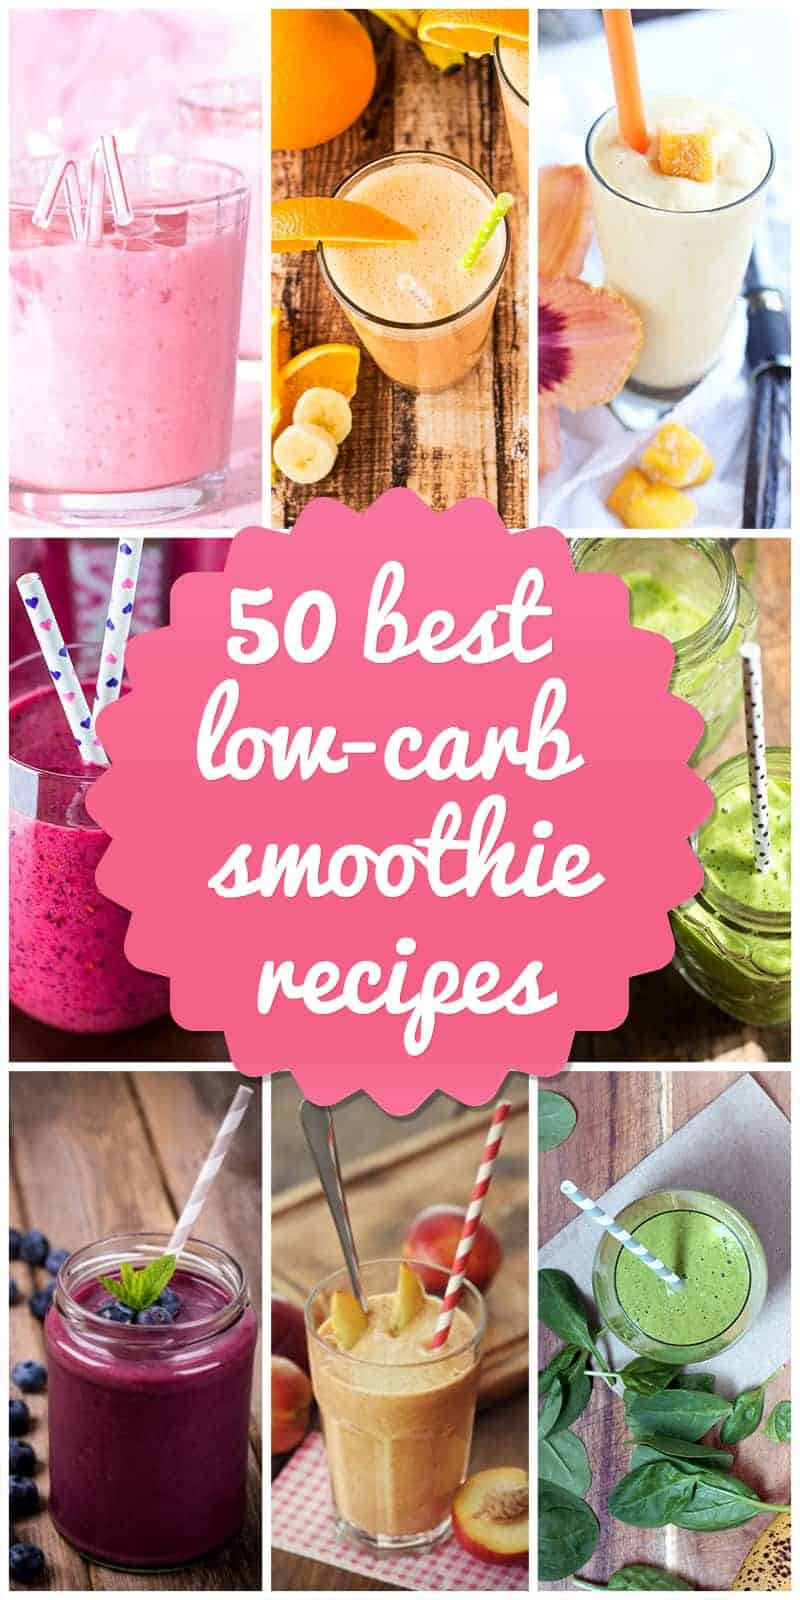 Low Carb Smoothie Recipes  50 Best Low Carb Smoothie Recipes for 2018